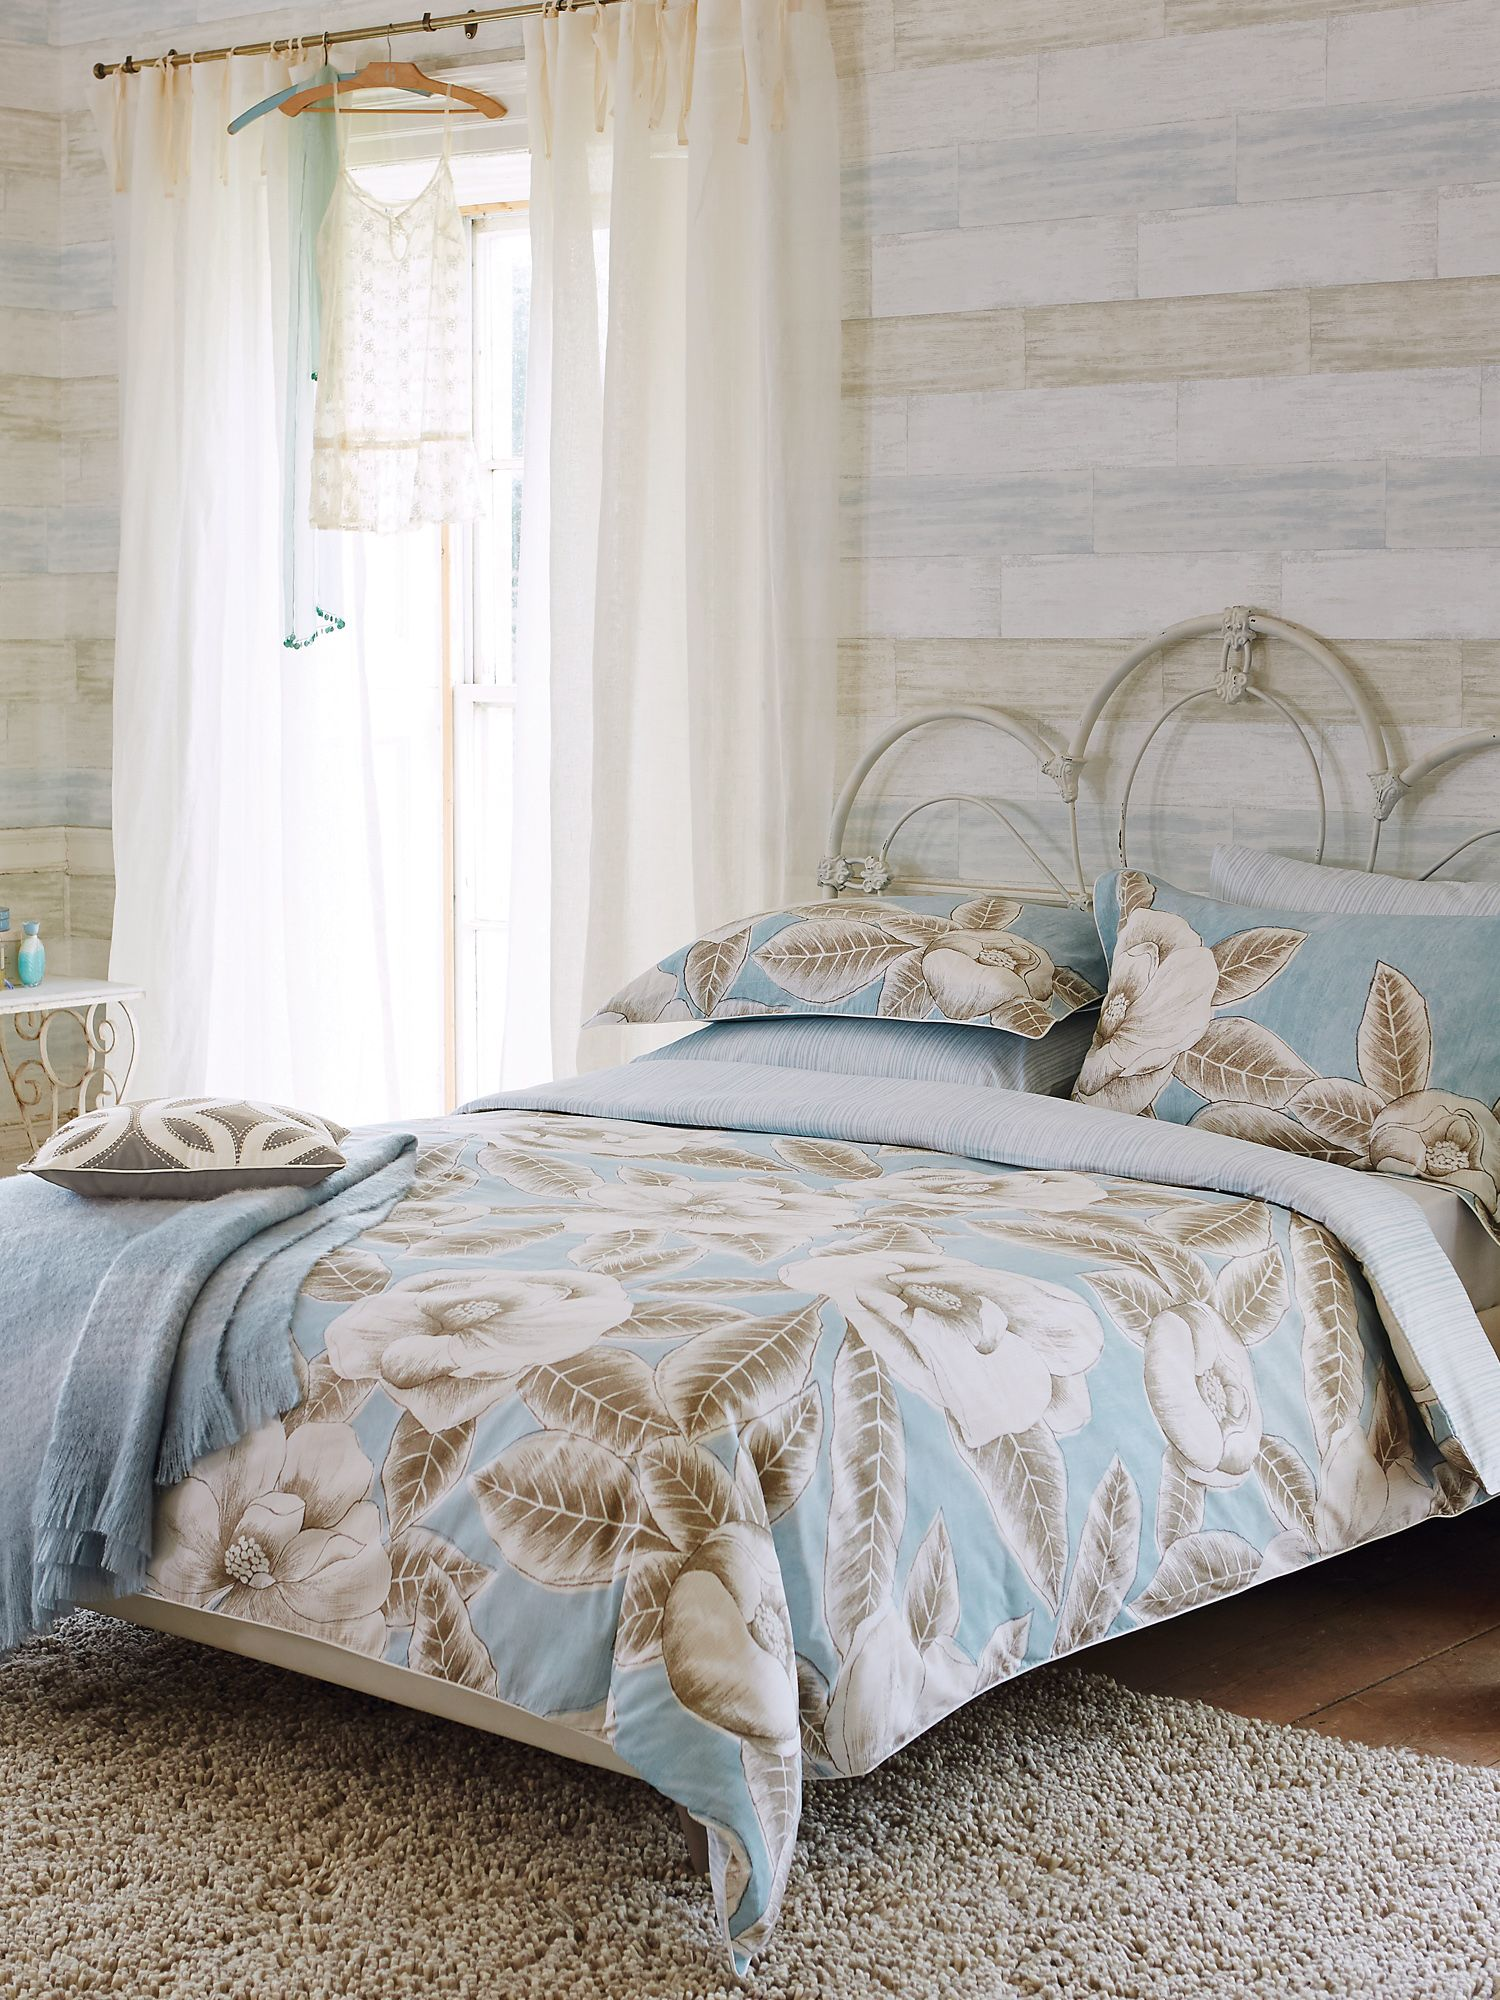 Floria bed linen in cornflower